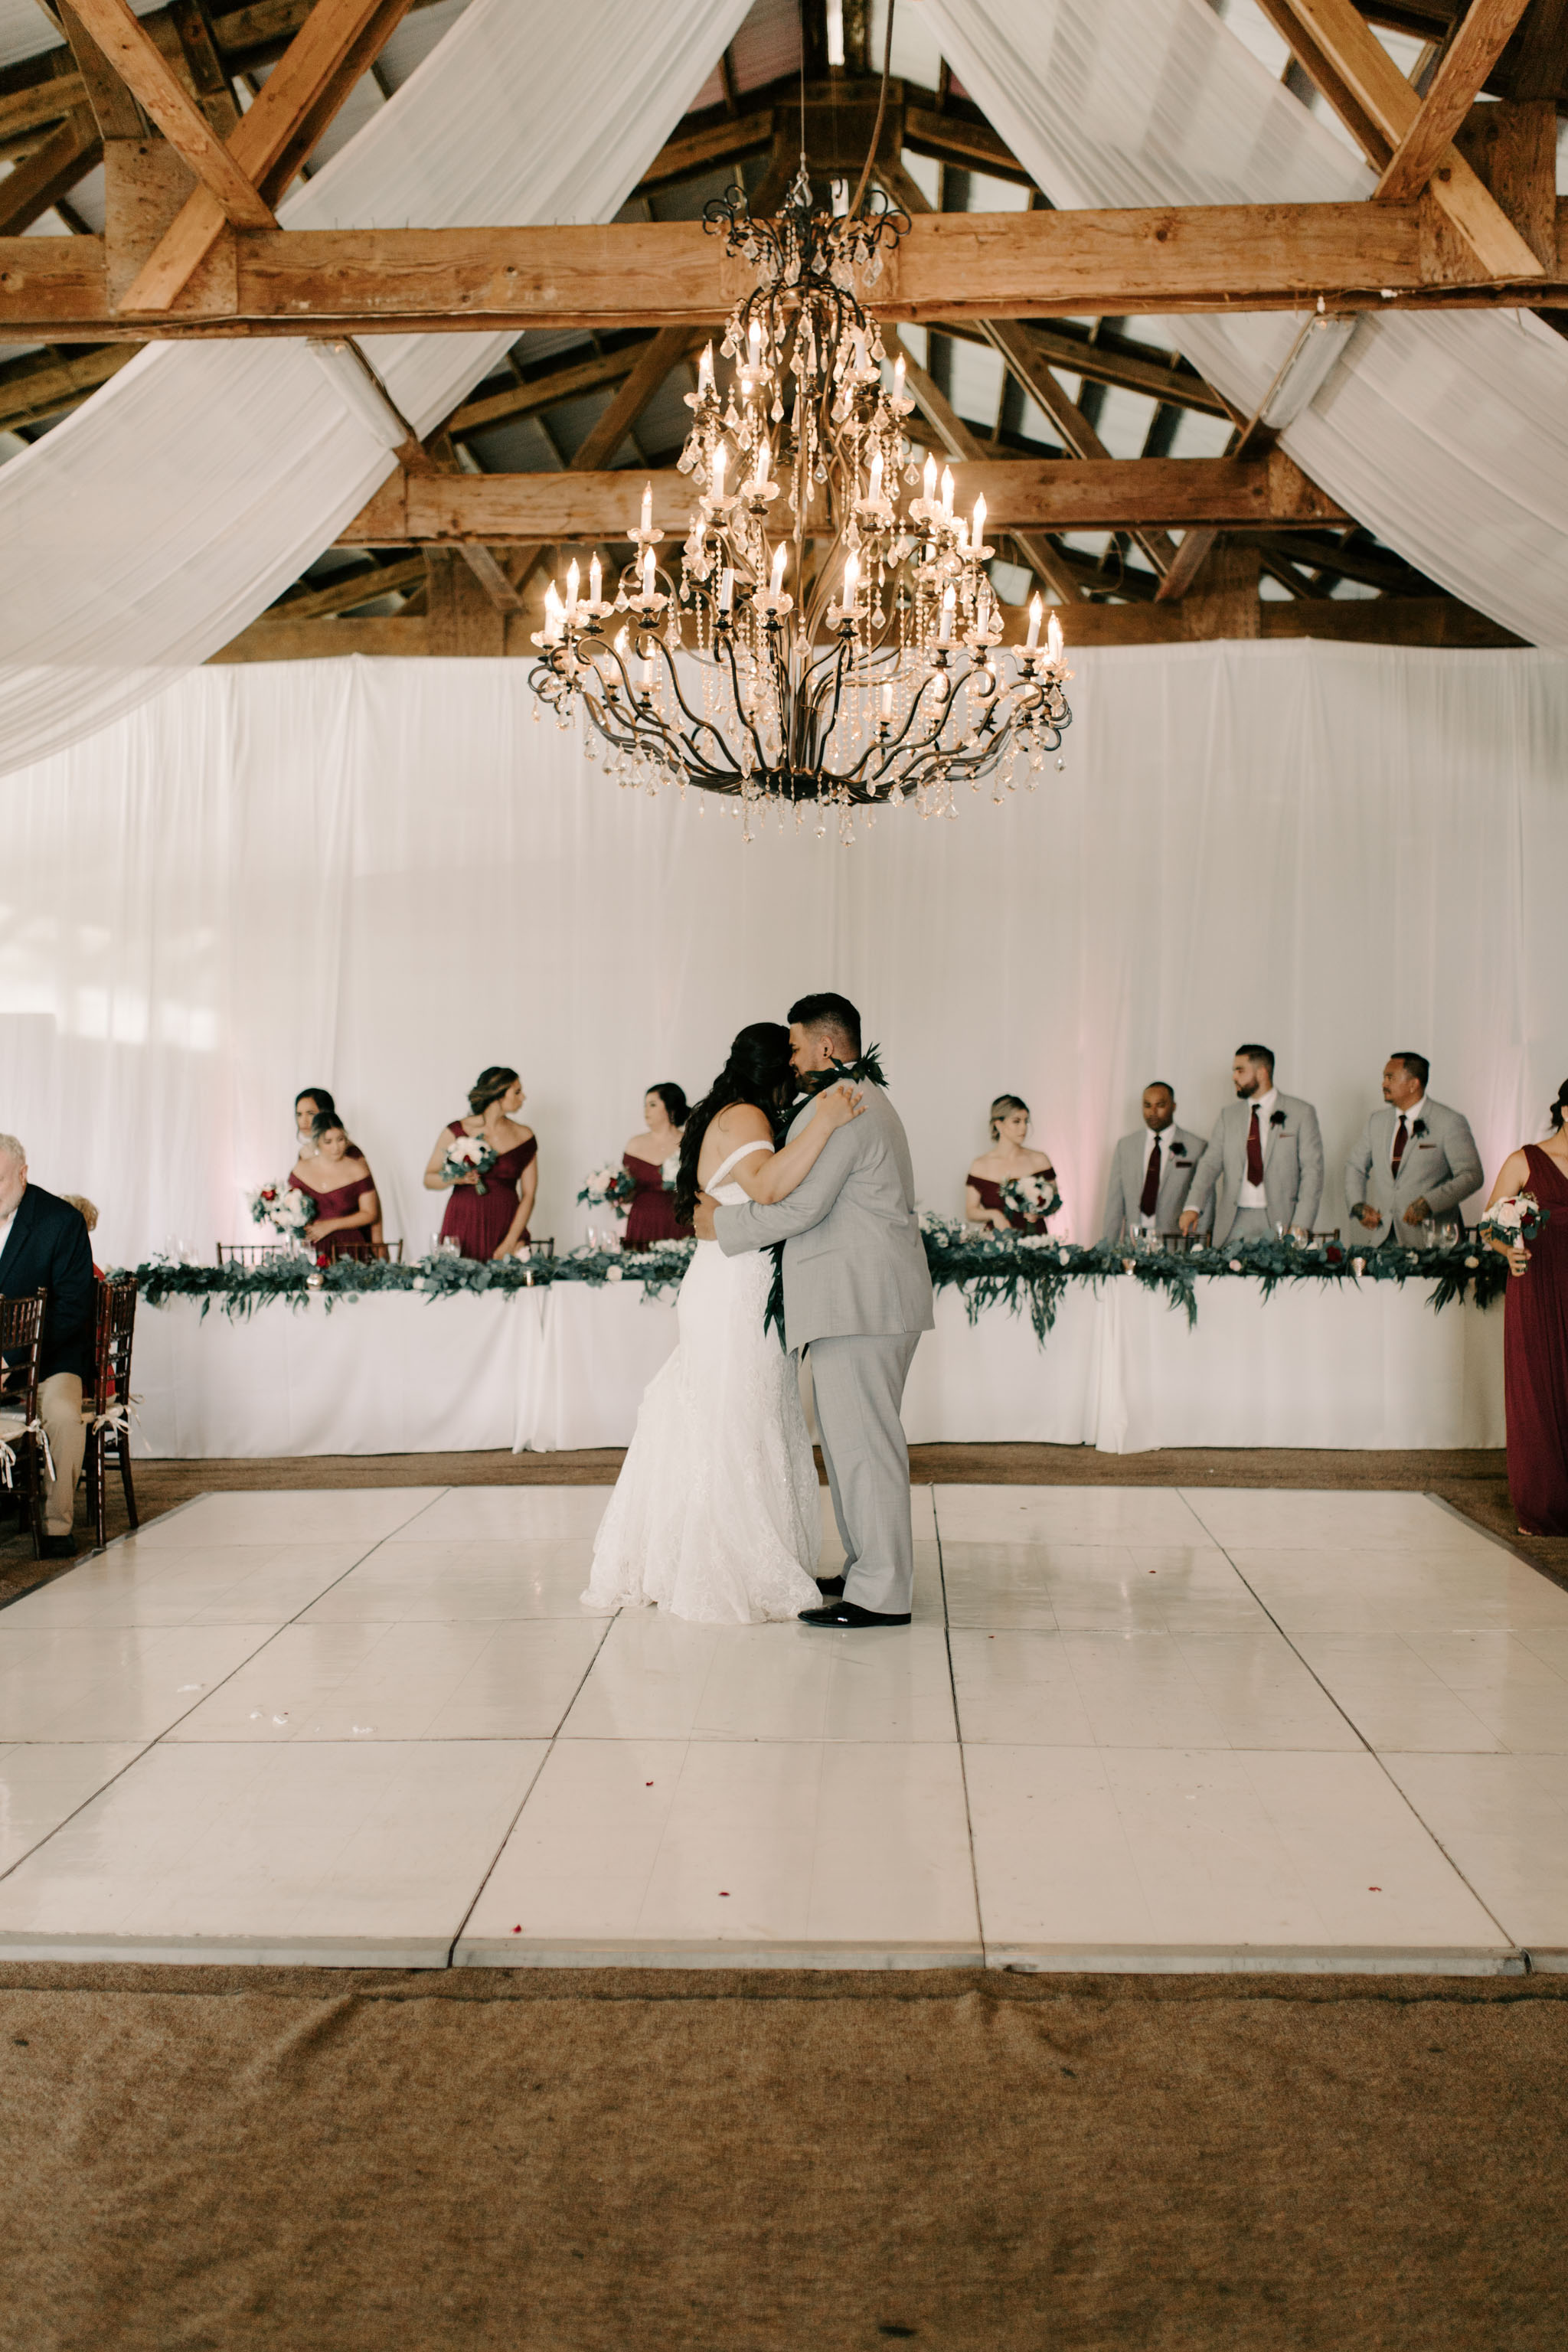 Bride and Groom First Dance - Hawaii Barn Wedding Reception - Sunset Ranch Hawaii Wedding By Oahu Wedding Photographer Desiree Leilani